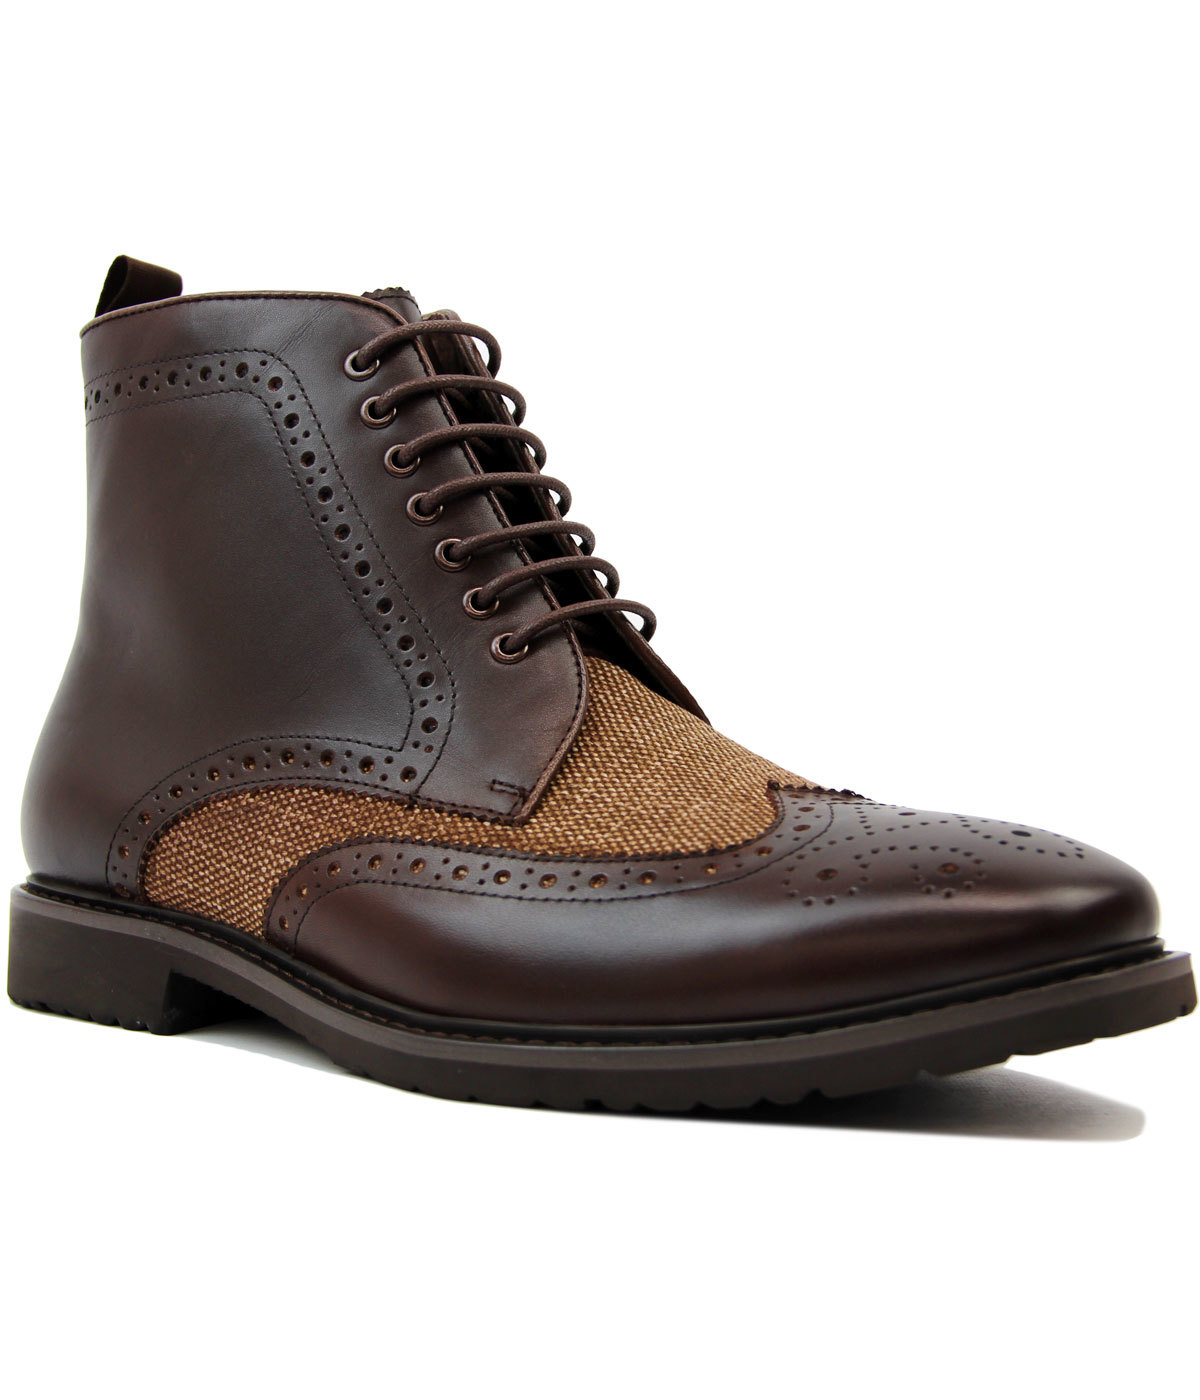 Noonbrough PAOLO VANDINI Mod Donegal Brogue Boots